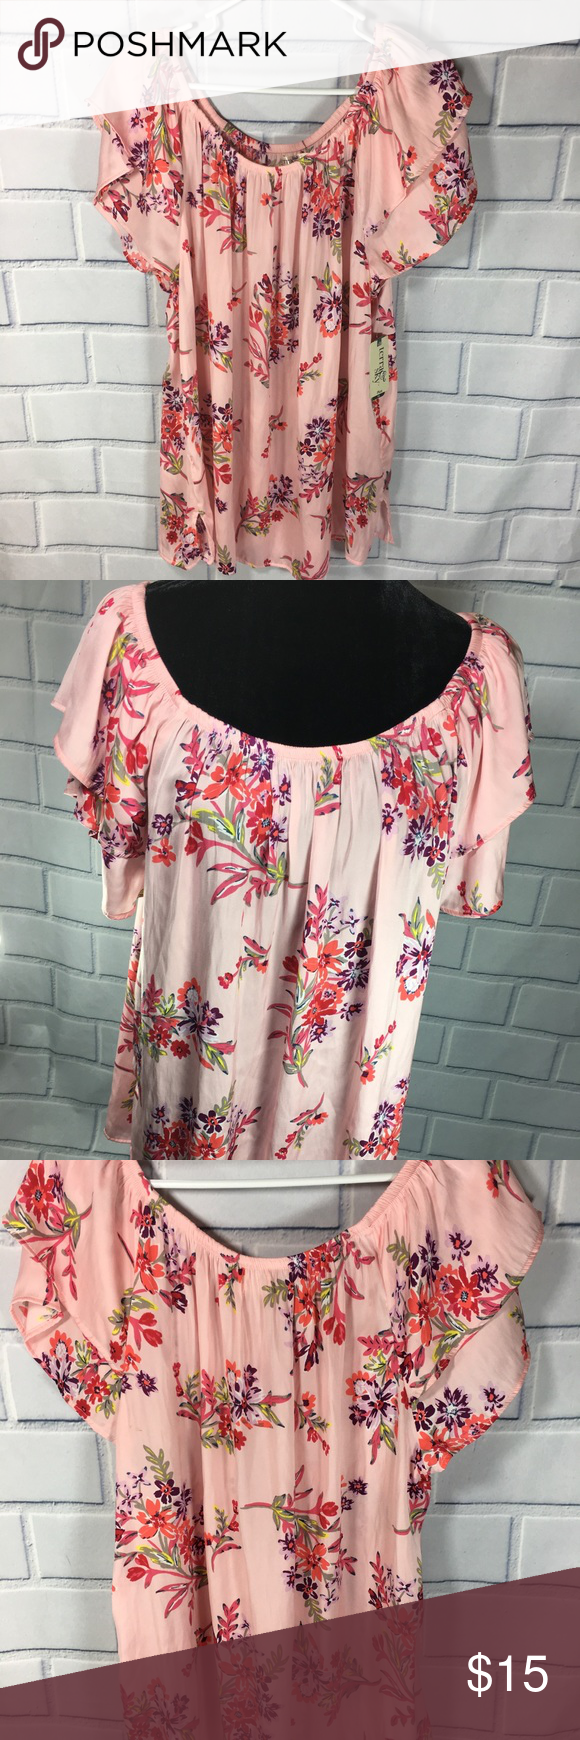 6ab48e4501393 Terra   Sky pink Floral On Off Shoulder Top New Terra   Sky pink Floral  On Off Shoulder Top Size 16 18 1x New With Tags - generous fit measures Pit  to Pit ...